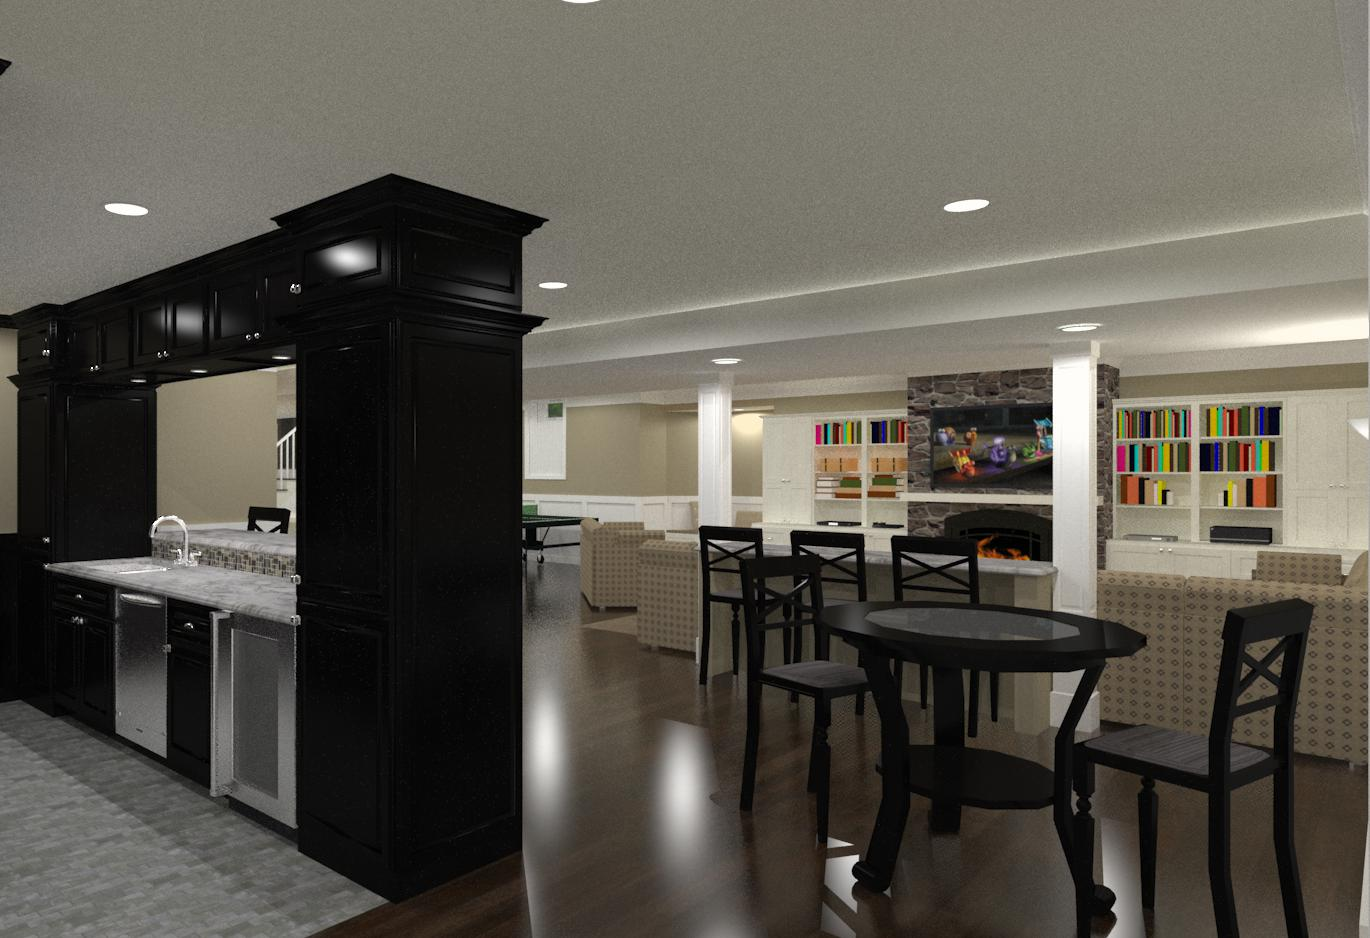 Basement Finishing And Remodeling Designs In Morris County NJ Design Build Planners